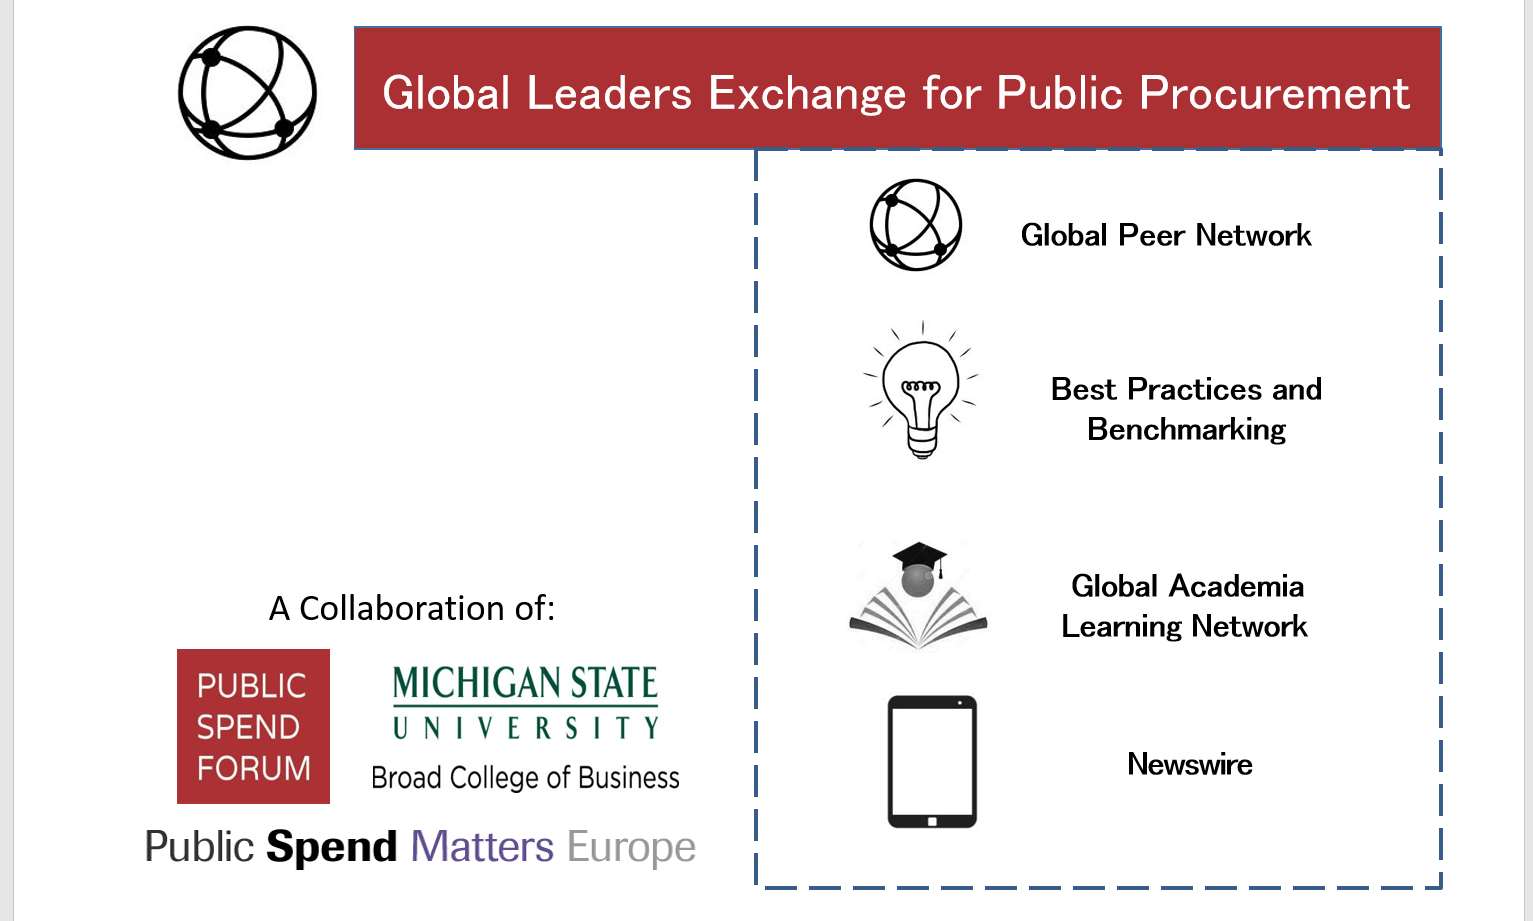 Welcome to the Global Leaders Exchange for Public Procurement